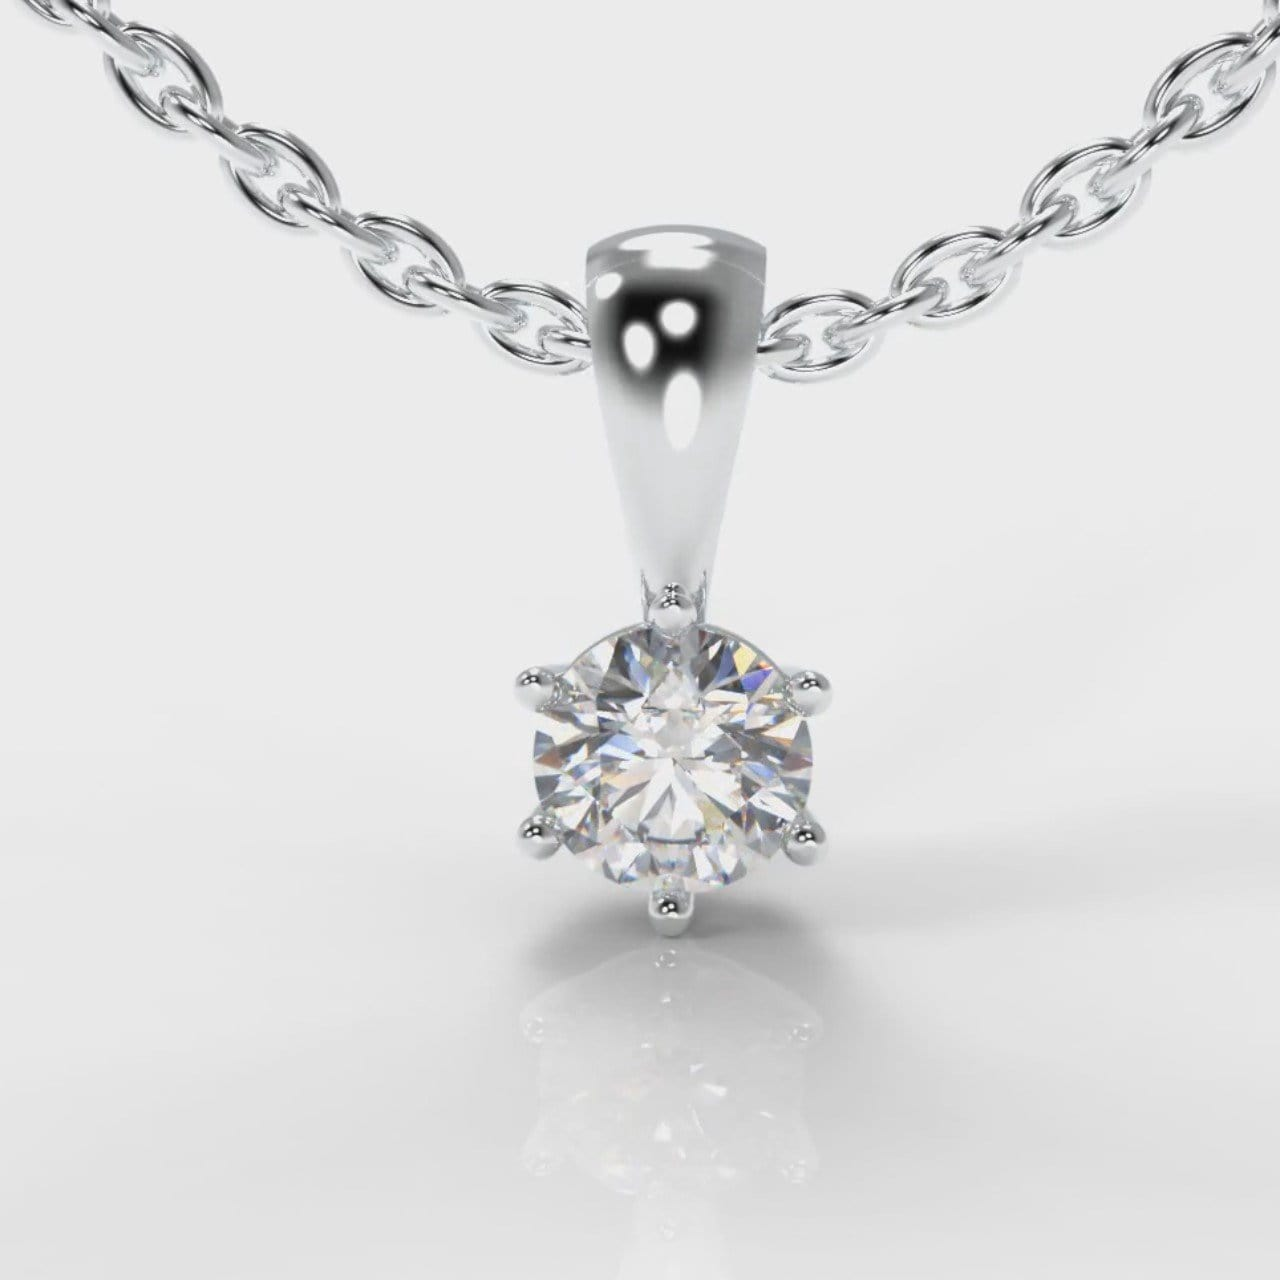 Six Claw Diamond Pendant (Lab Grown Diamond)